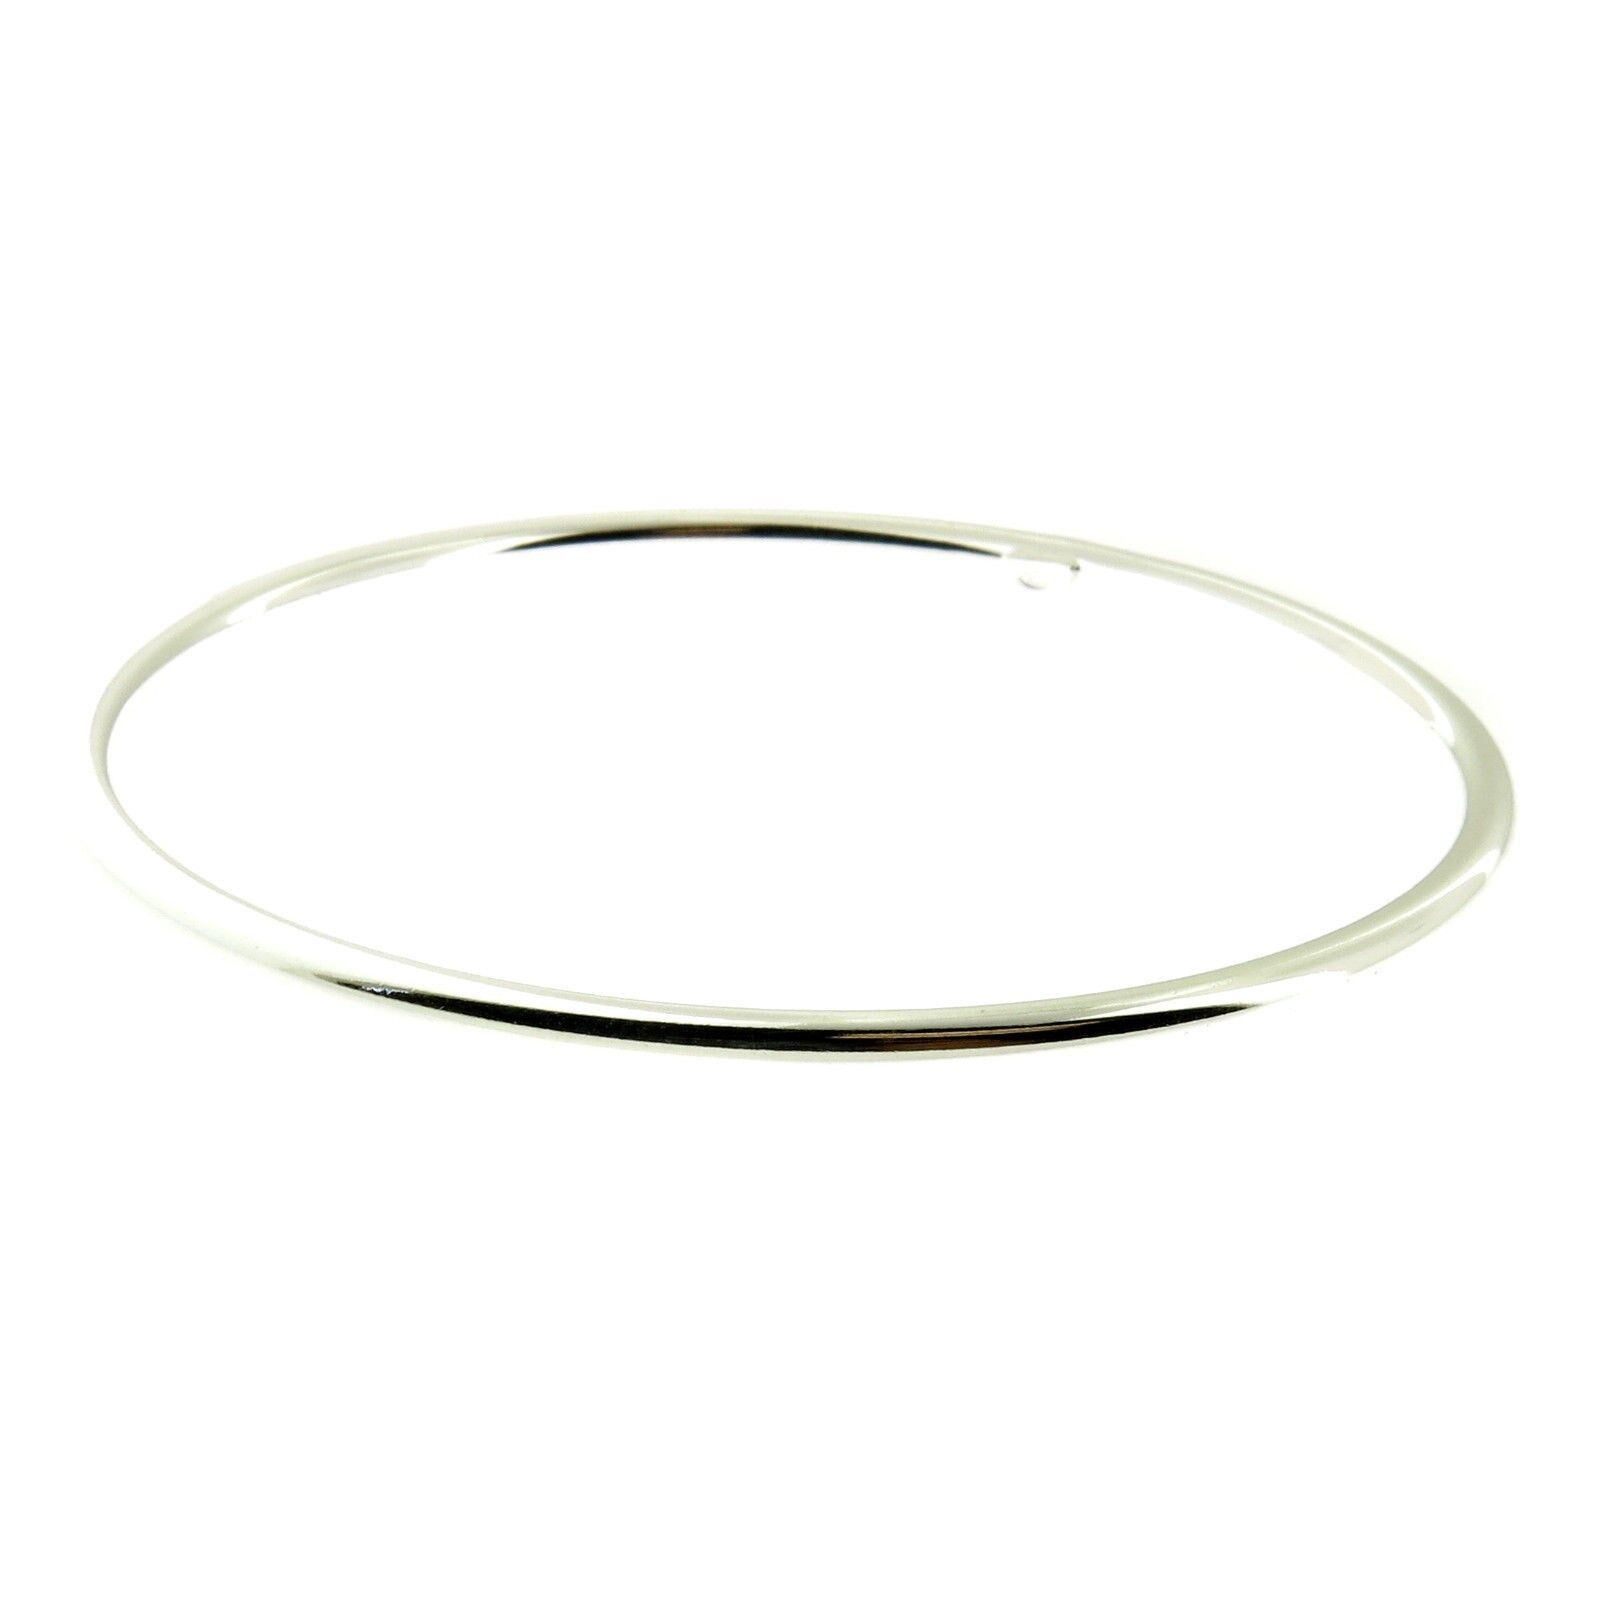 925 Sterling Silver Highly Polished Smooth Cuff Bangle Bracelets